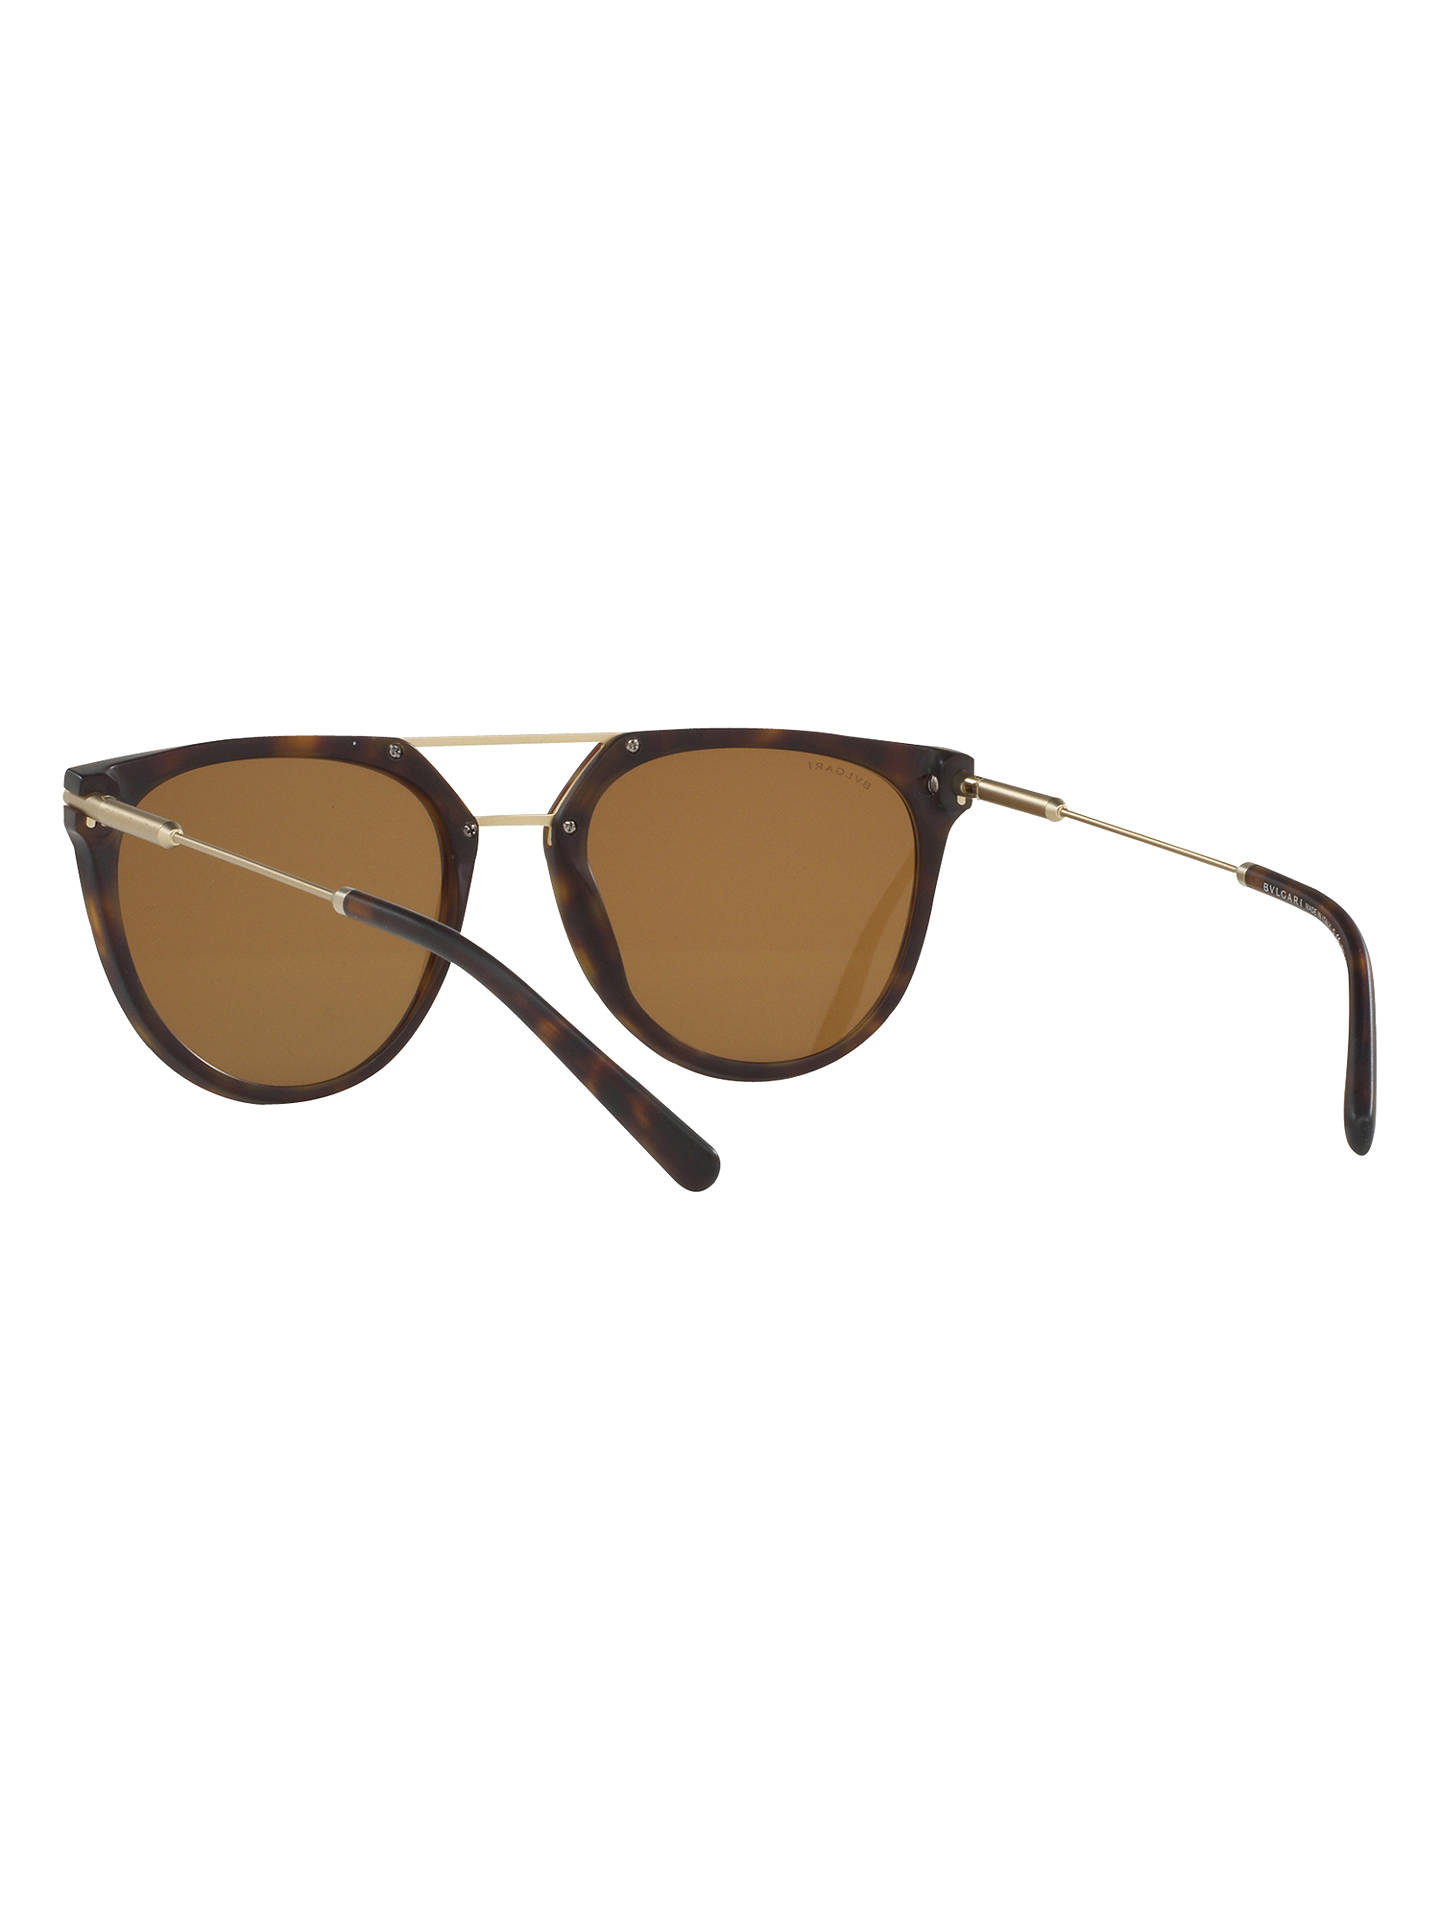 BuyBVLGARI BV7029 Polarised Aviator Sunglasses, Tortoise Online at johnlewis.com